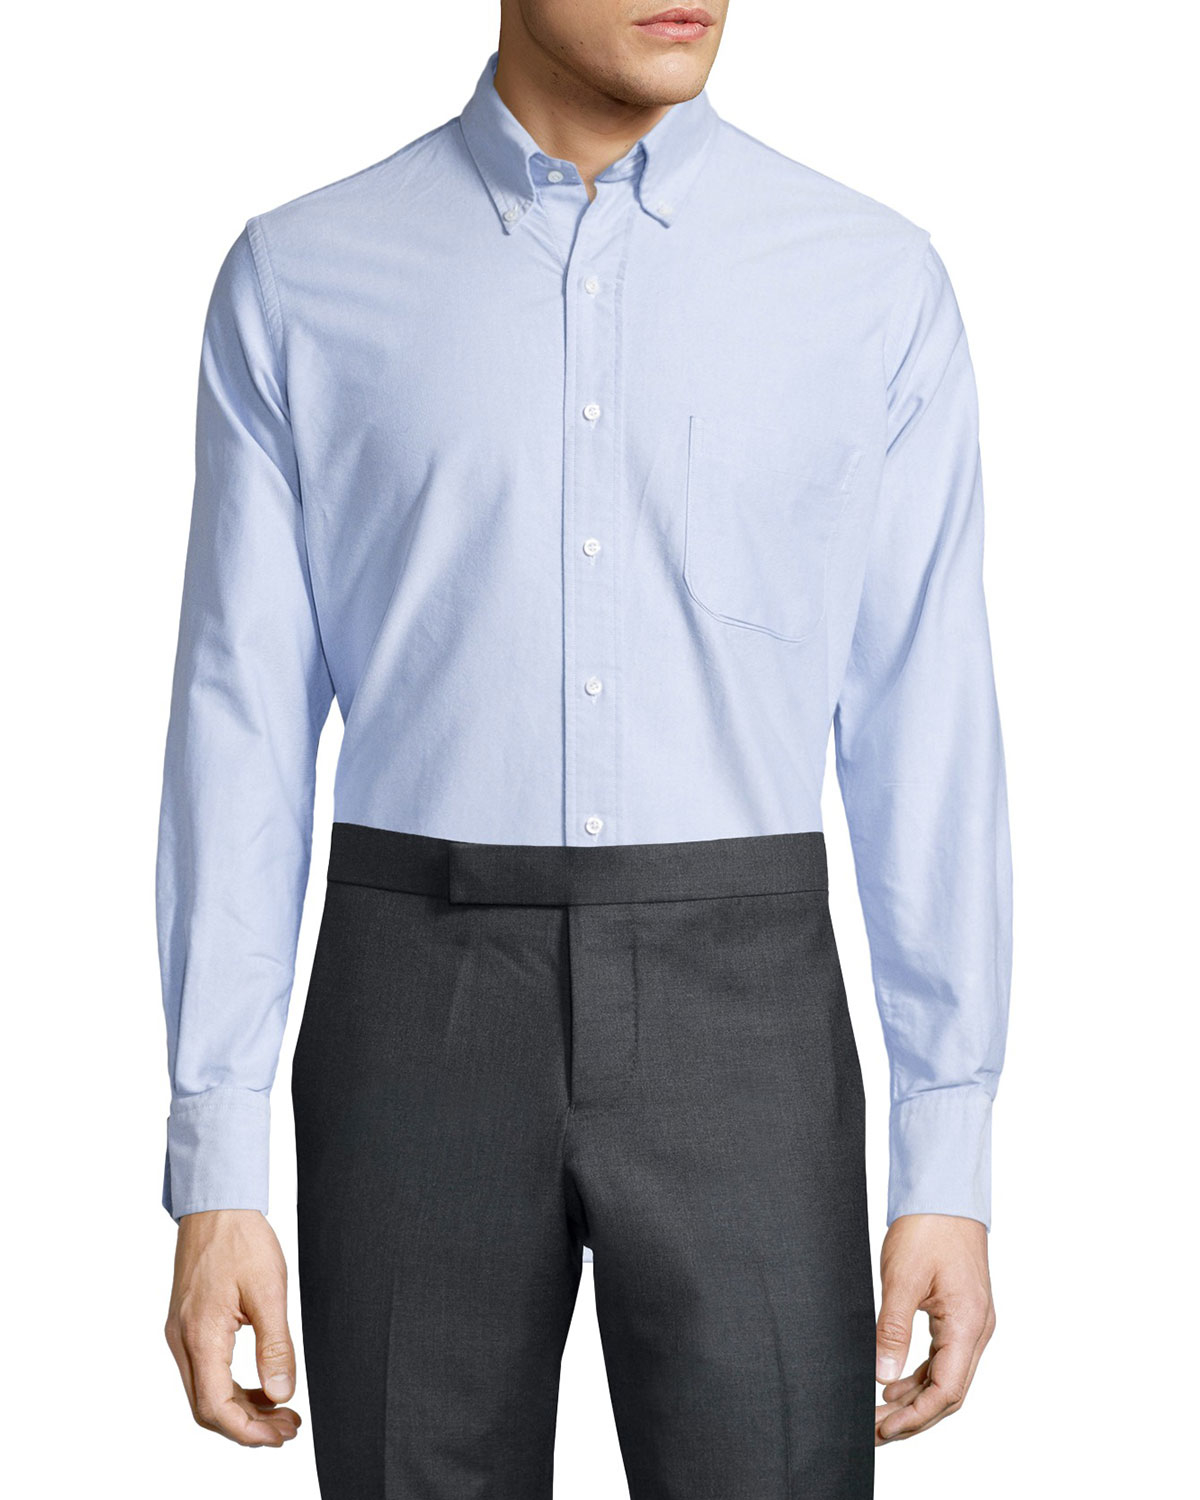 Thom Browne Oxford Dress Shirt In White For Men Blue Lyst